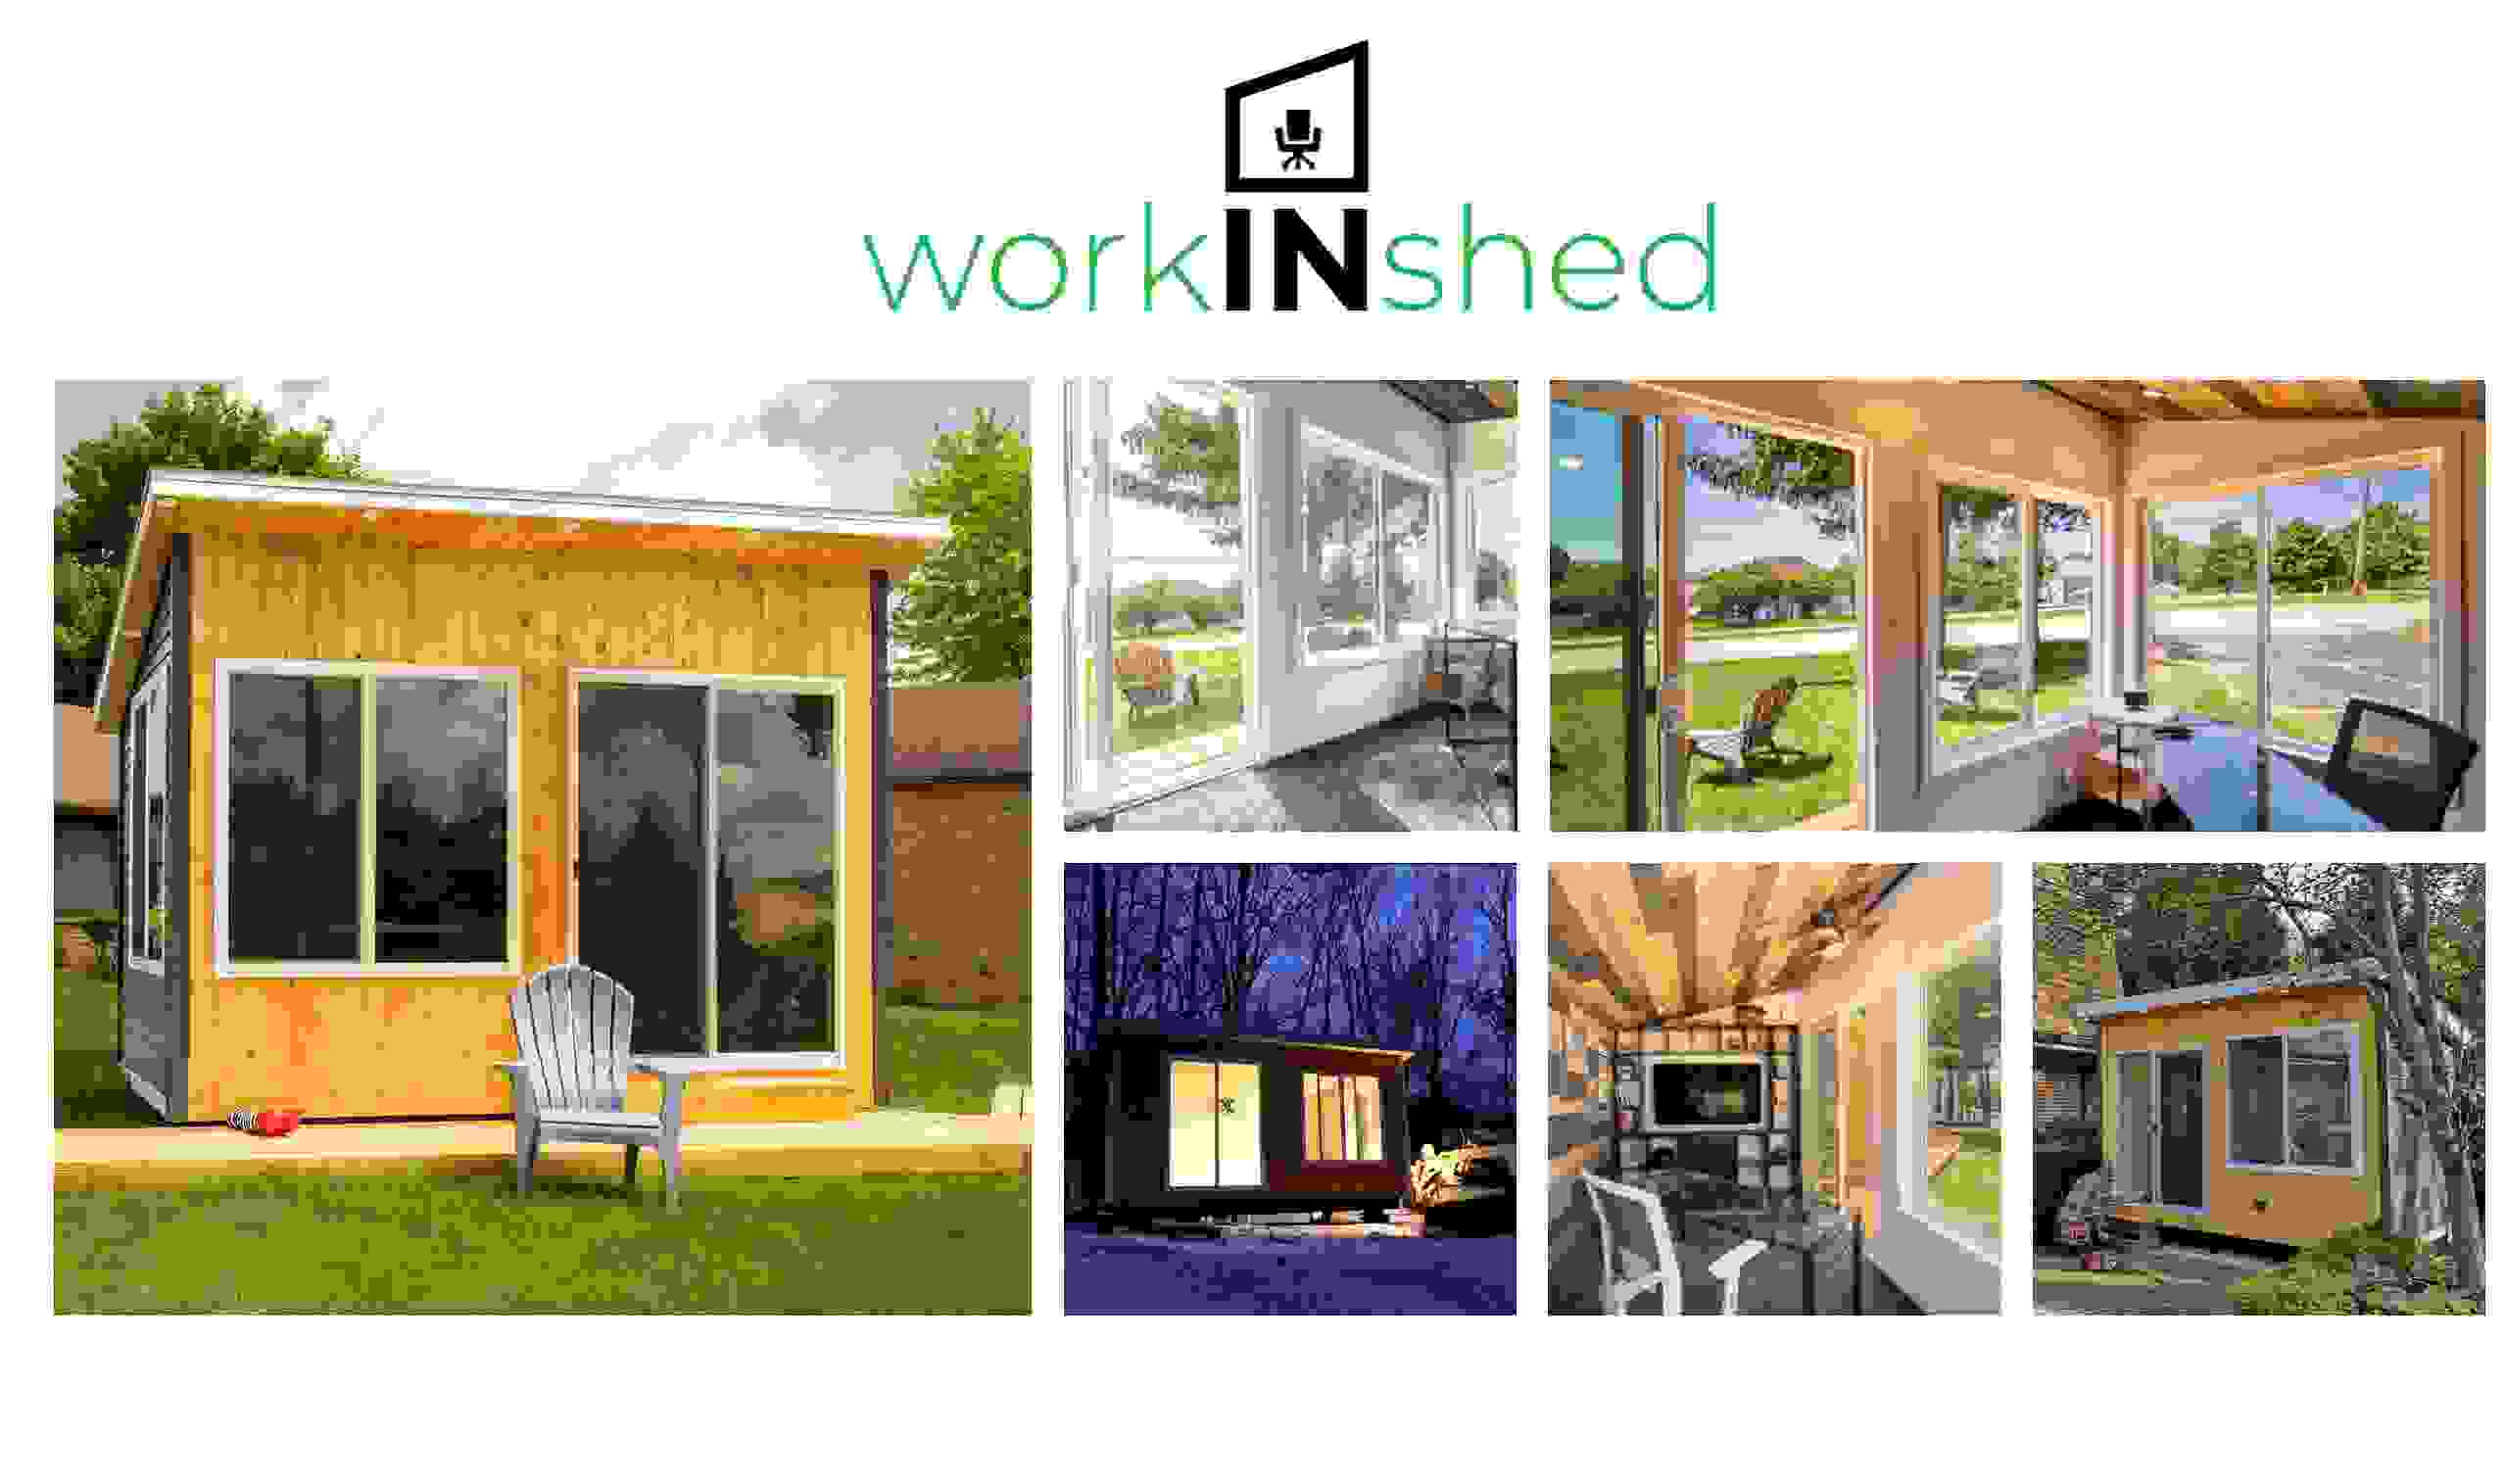 Sheds for working from home, from your backyard.